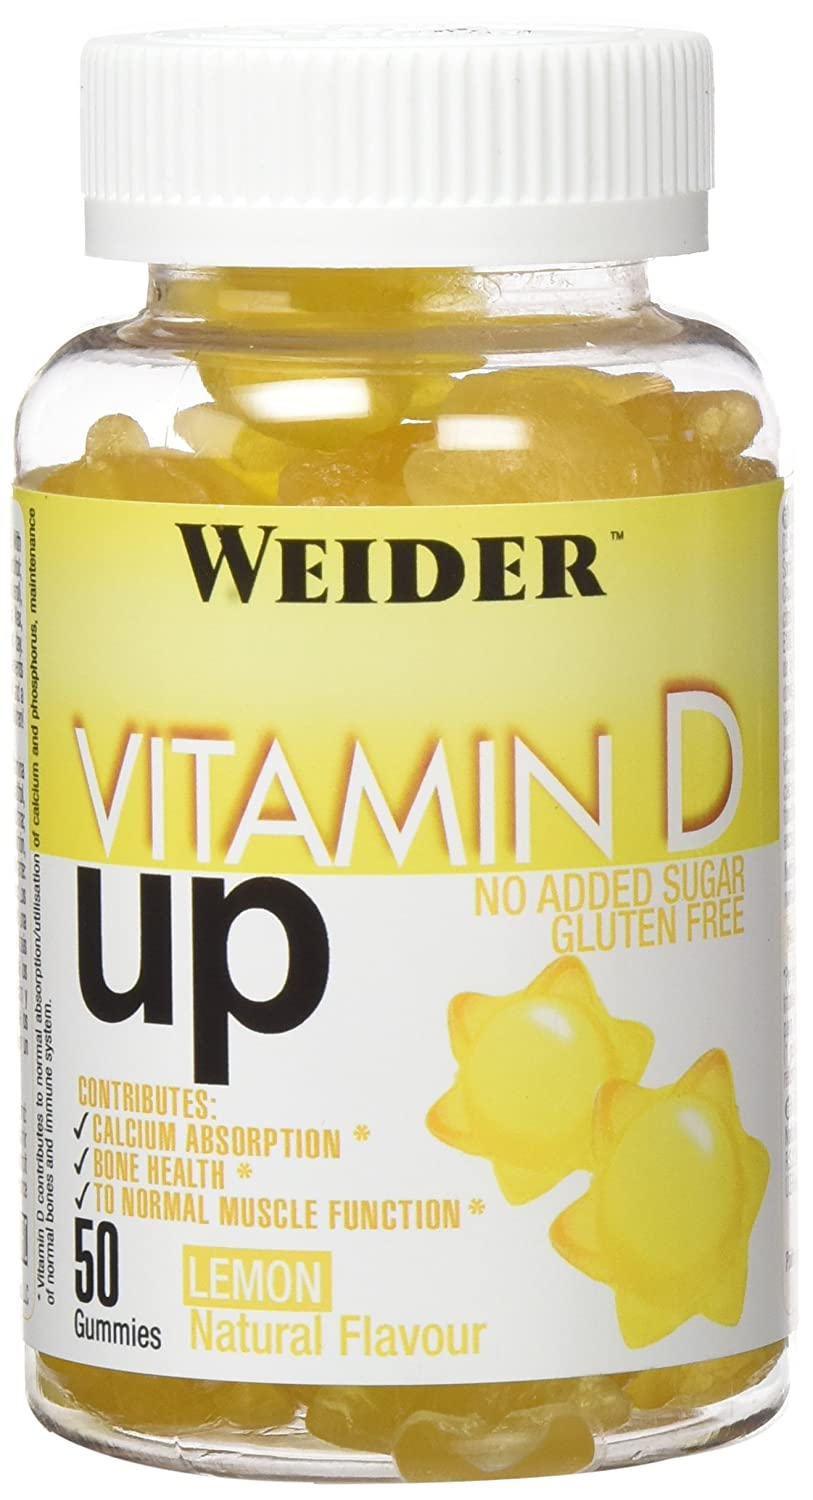 WEIDER Gummy up Revolution SIN GLUTEN Vitamin D 50 Gom ...